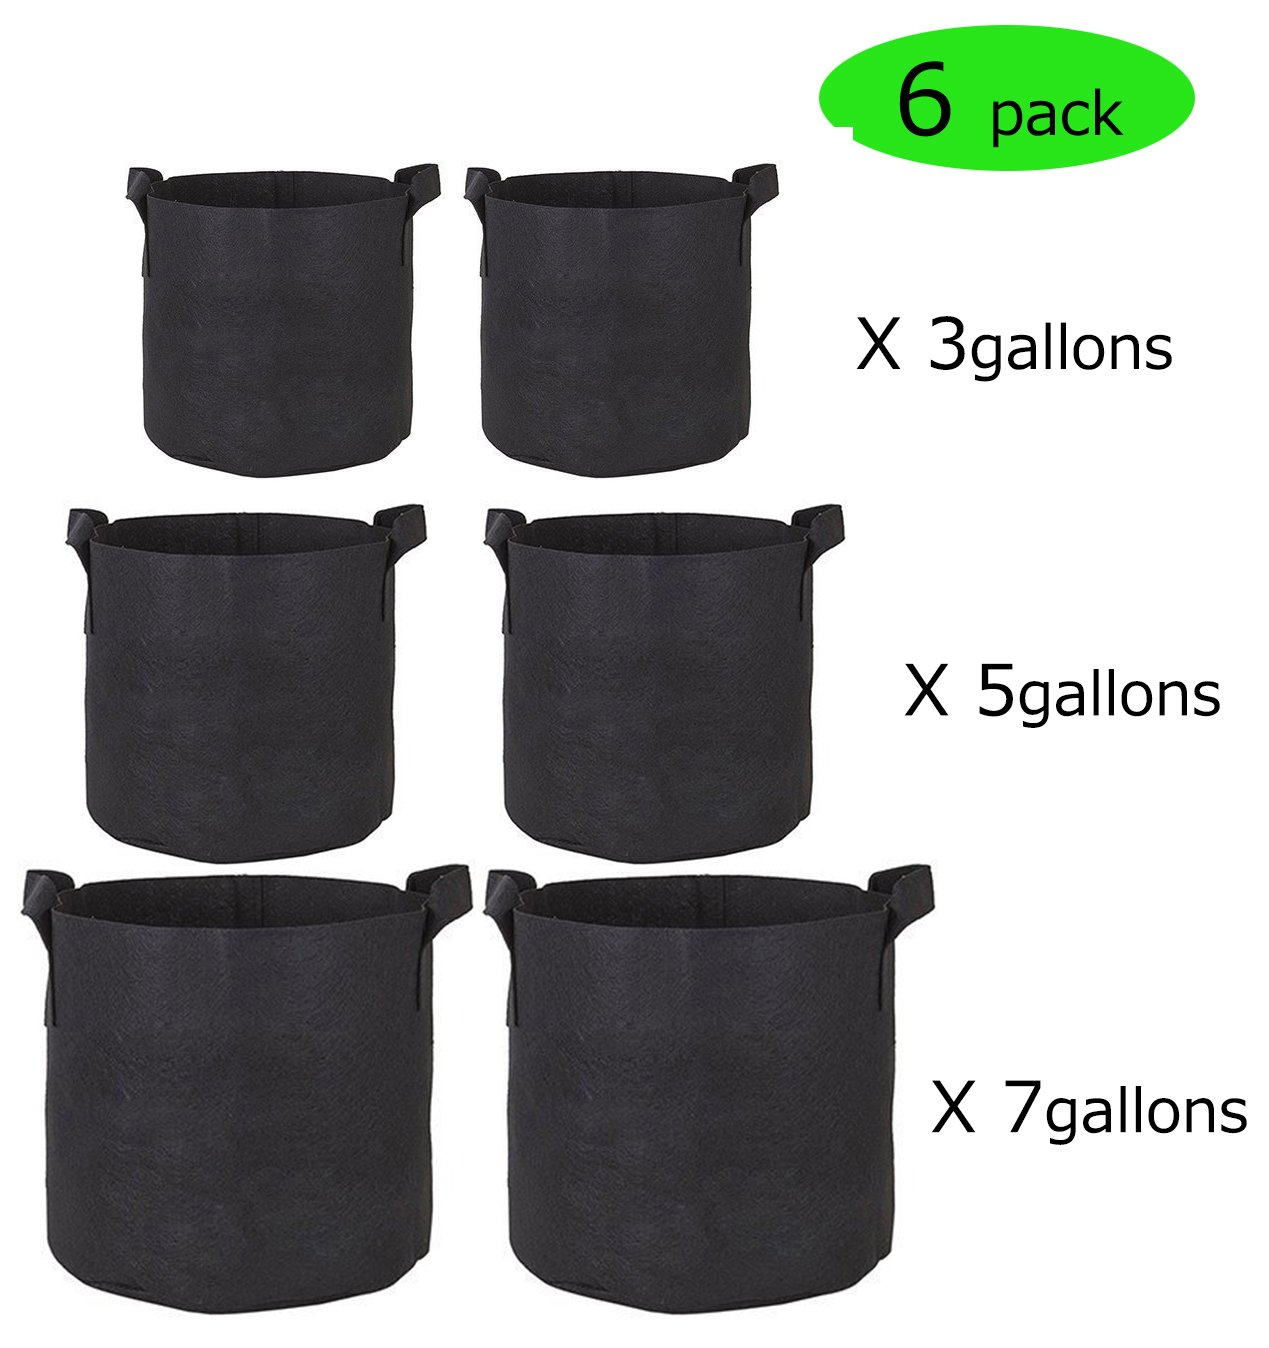 3 Gallon/5 Gallon/7 Gallon Grow Bags- 6 Pack Reusable and Durable Fabric Aeration Pots Container with Strap Handles, Perfect for Nursery Garden and Planting by F-sport